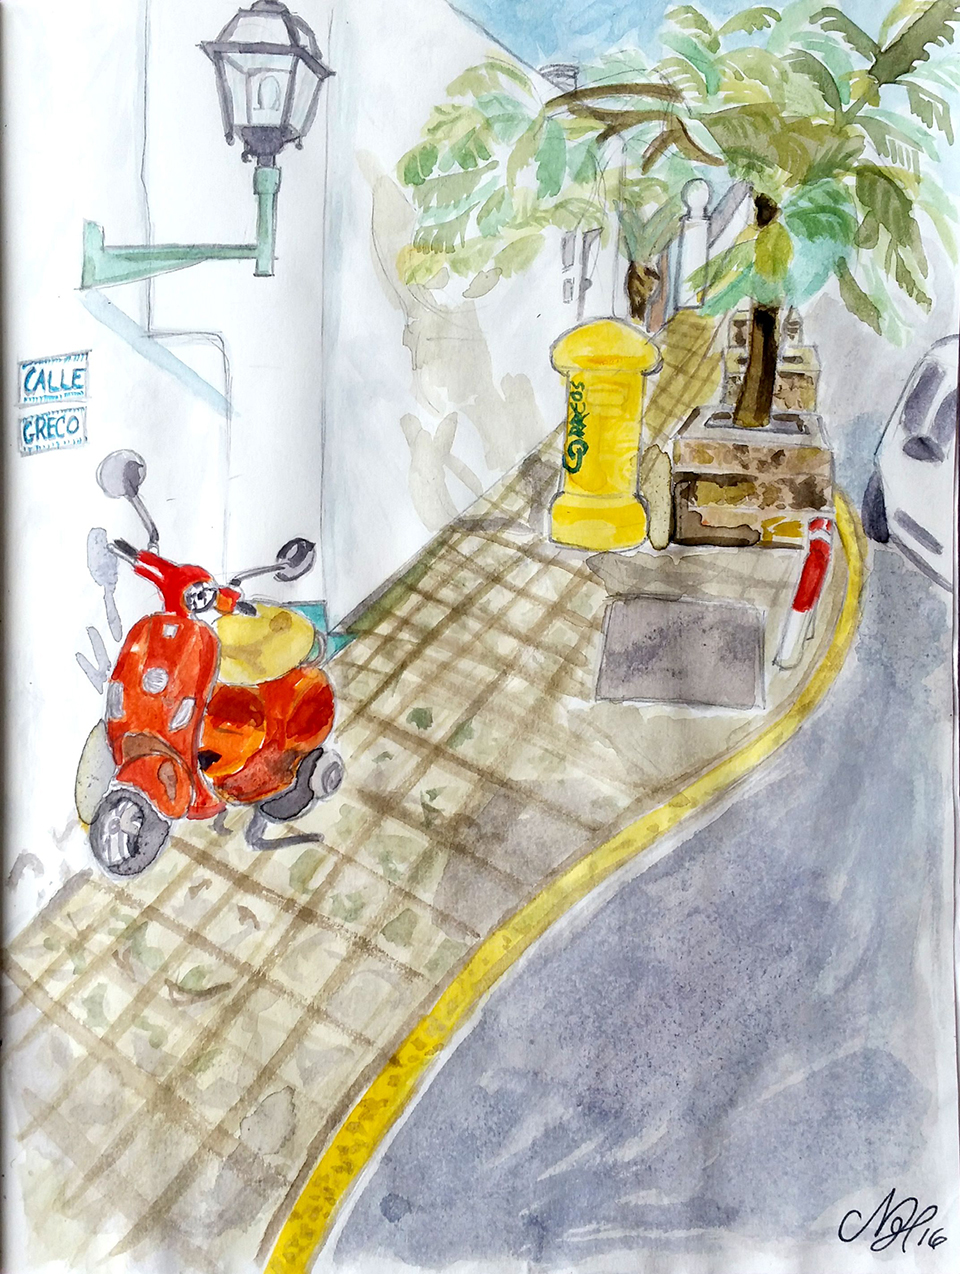 Calle Greco, aquarell on paper - from a street in Gran Canaria